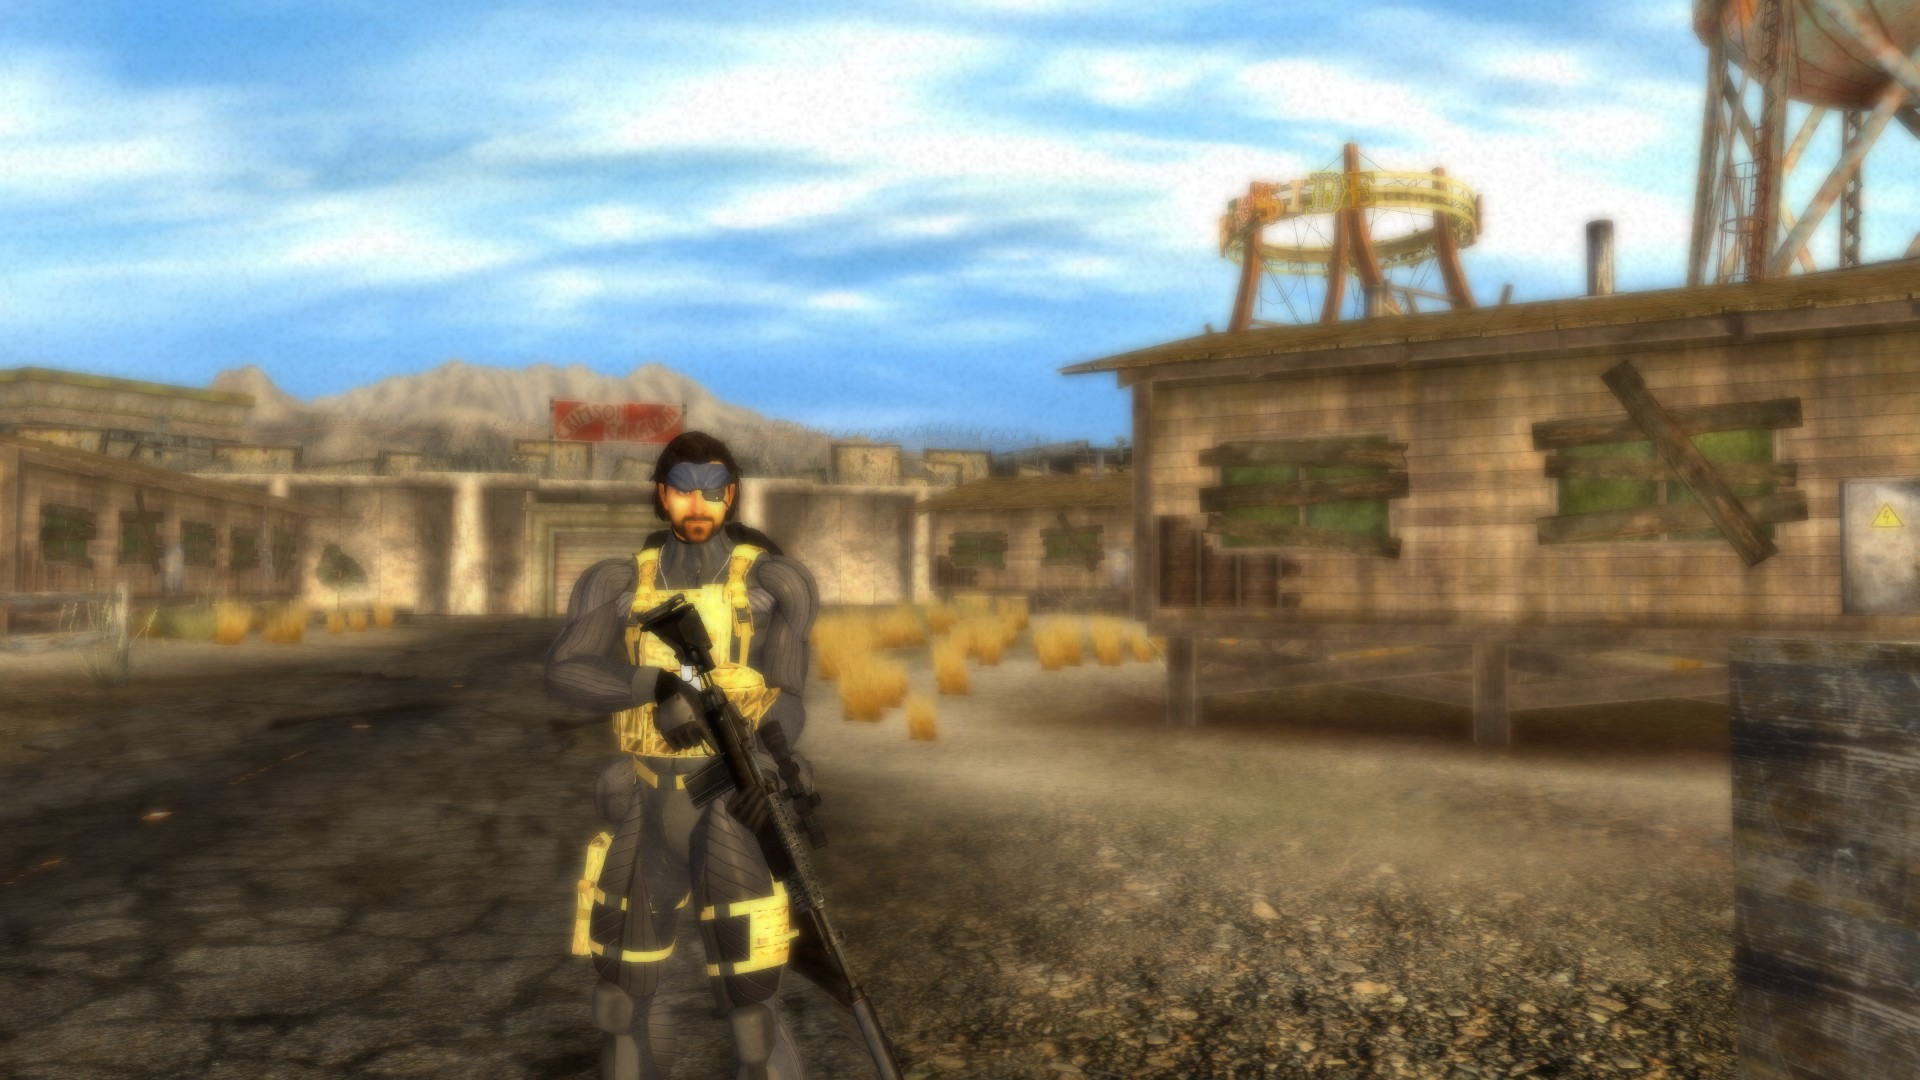 M39 EMR at Fallout New Vegas - mods and community